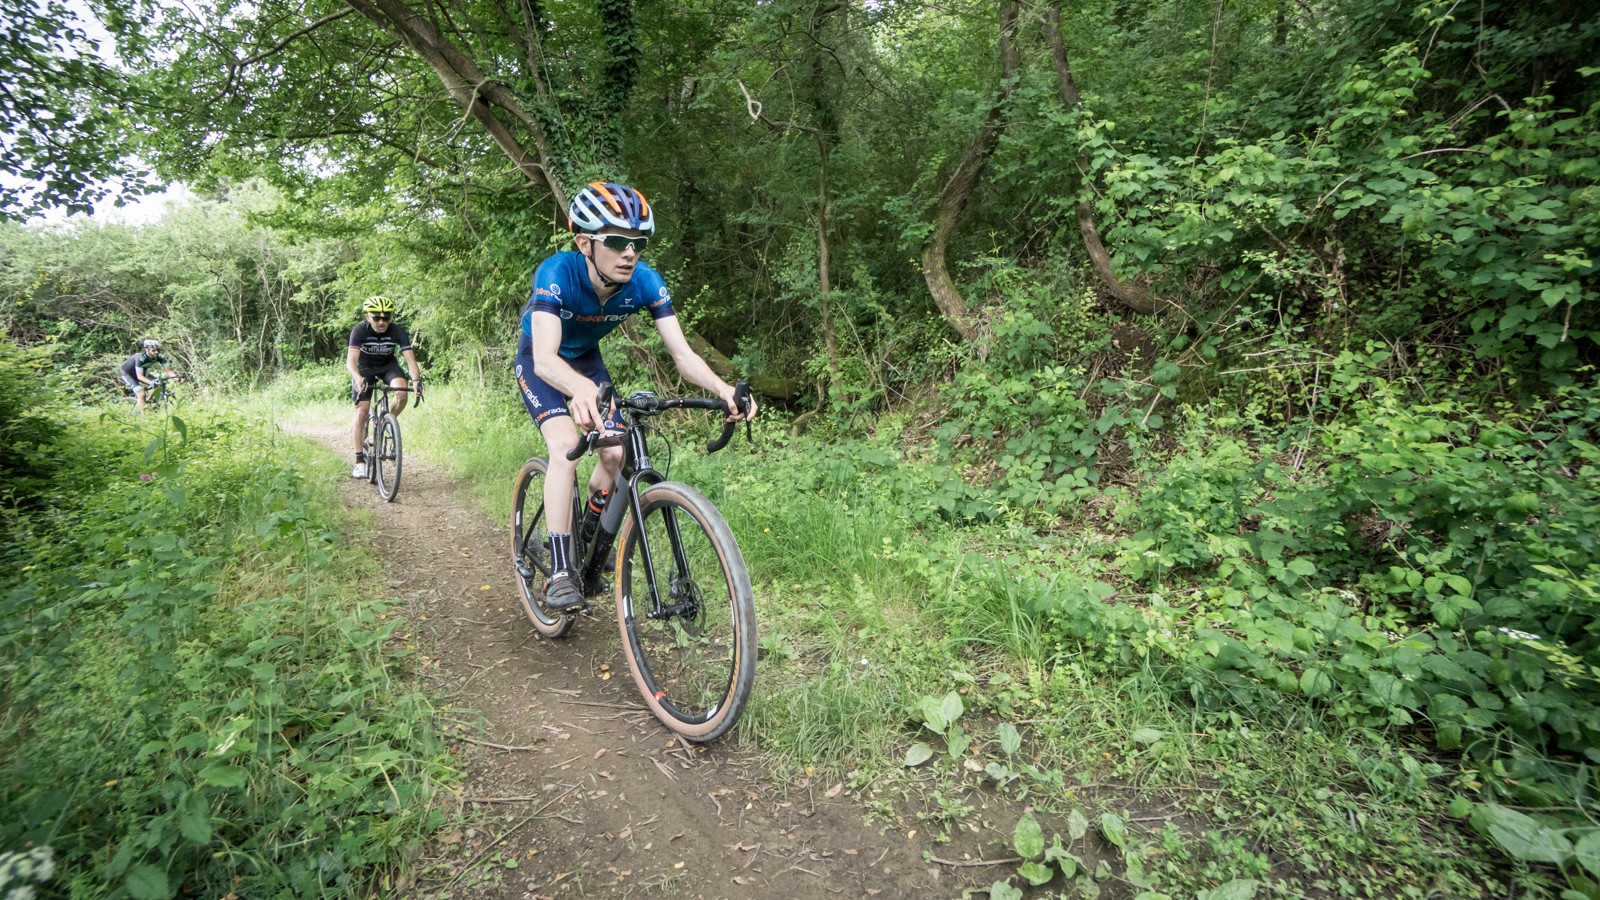 We tried out the new Exploro on all sorts of surfaces this year